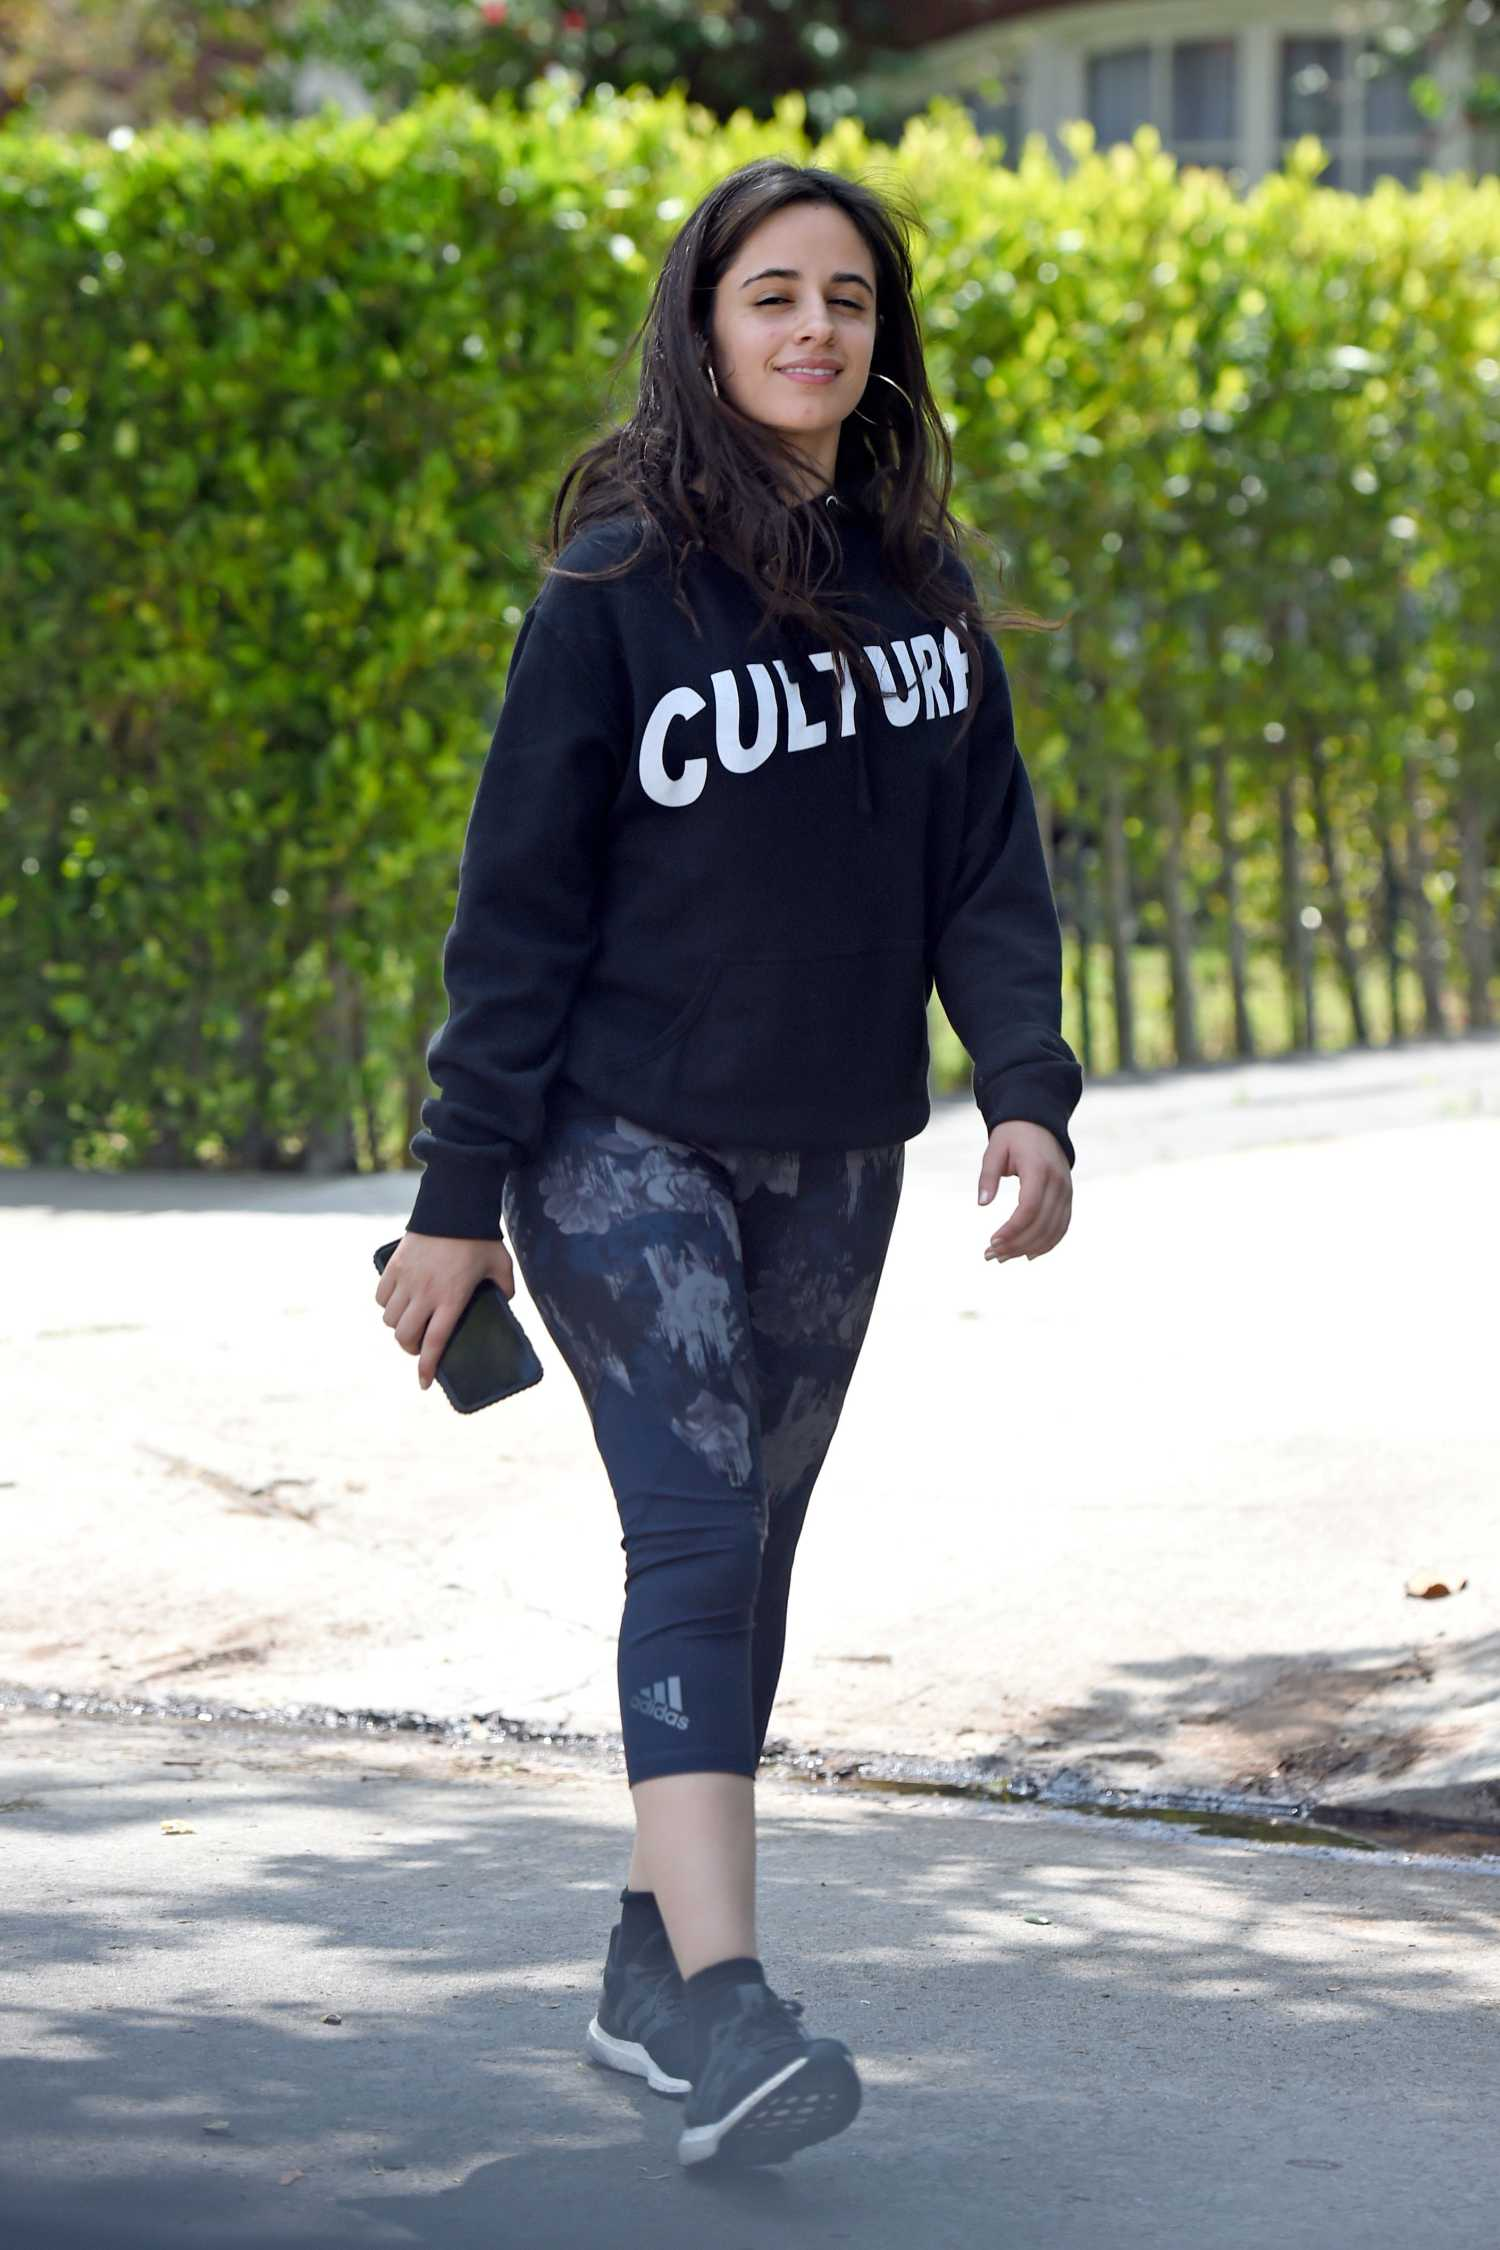 Camila Cabello in a Black Hoody Leaves a Friend's House in